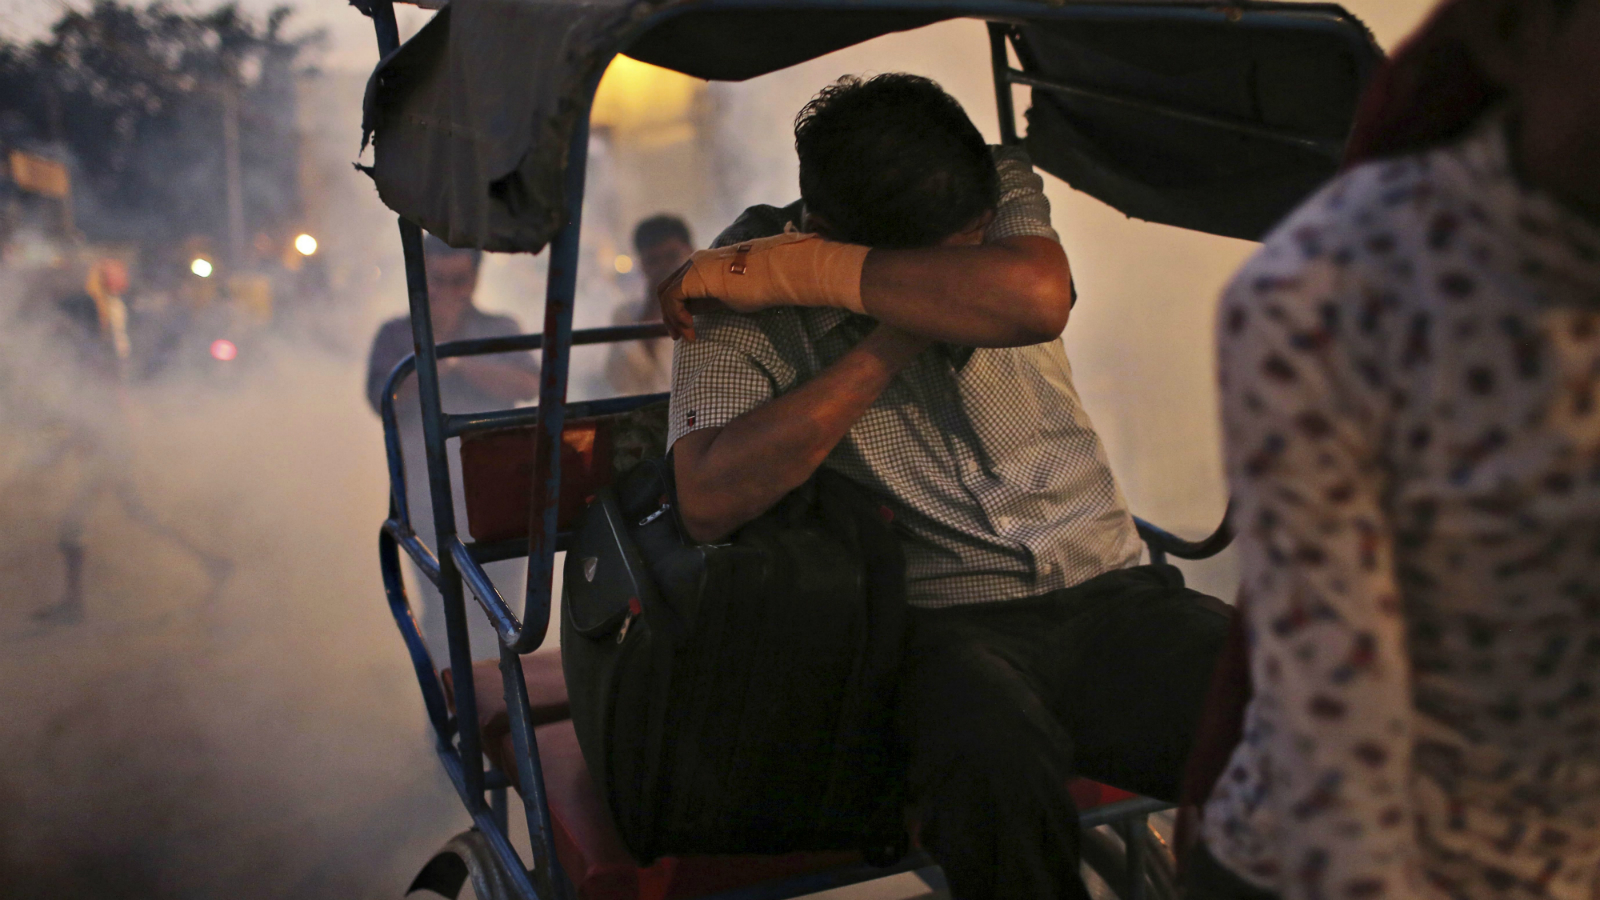 An Indian man covers his face as he rides in the back of a rickshaw as a municipal worker, not seen, fogs for mosquitos on a street in New Delhi, India, Wednesday, Oct. 17, 2012. More than 400 cases of Dengue fever, a mosquito born virus, have been reported in India's capital in a recent outbreak, local media reported. (AP Photo/Kevin Frayer)